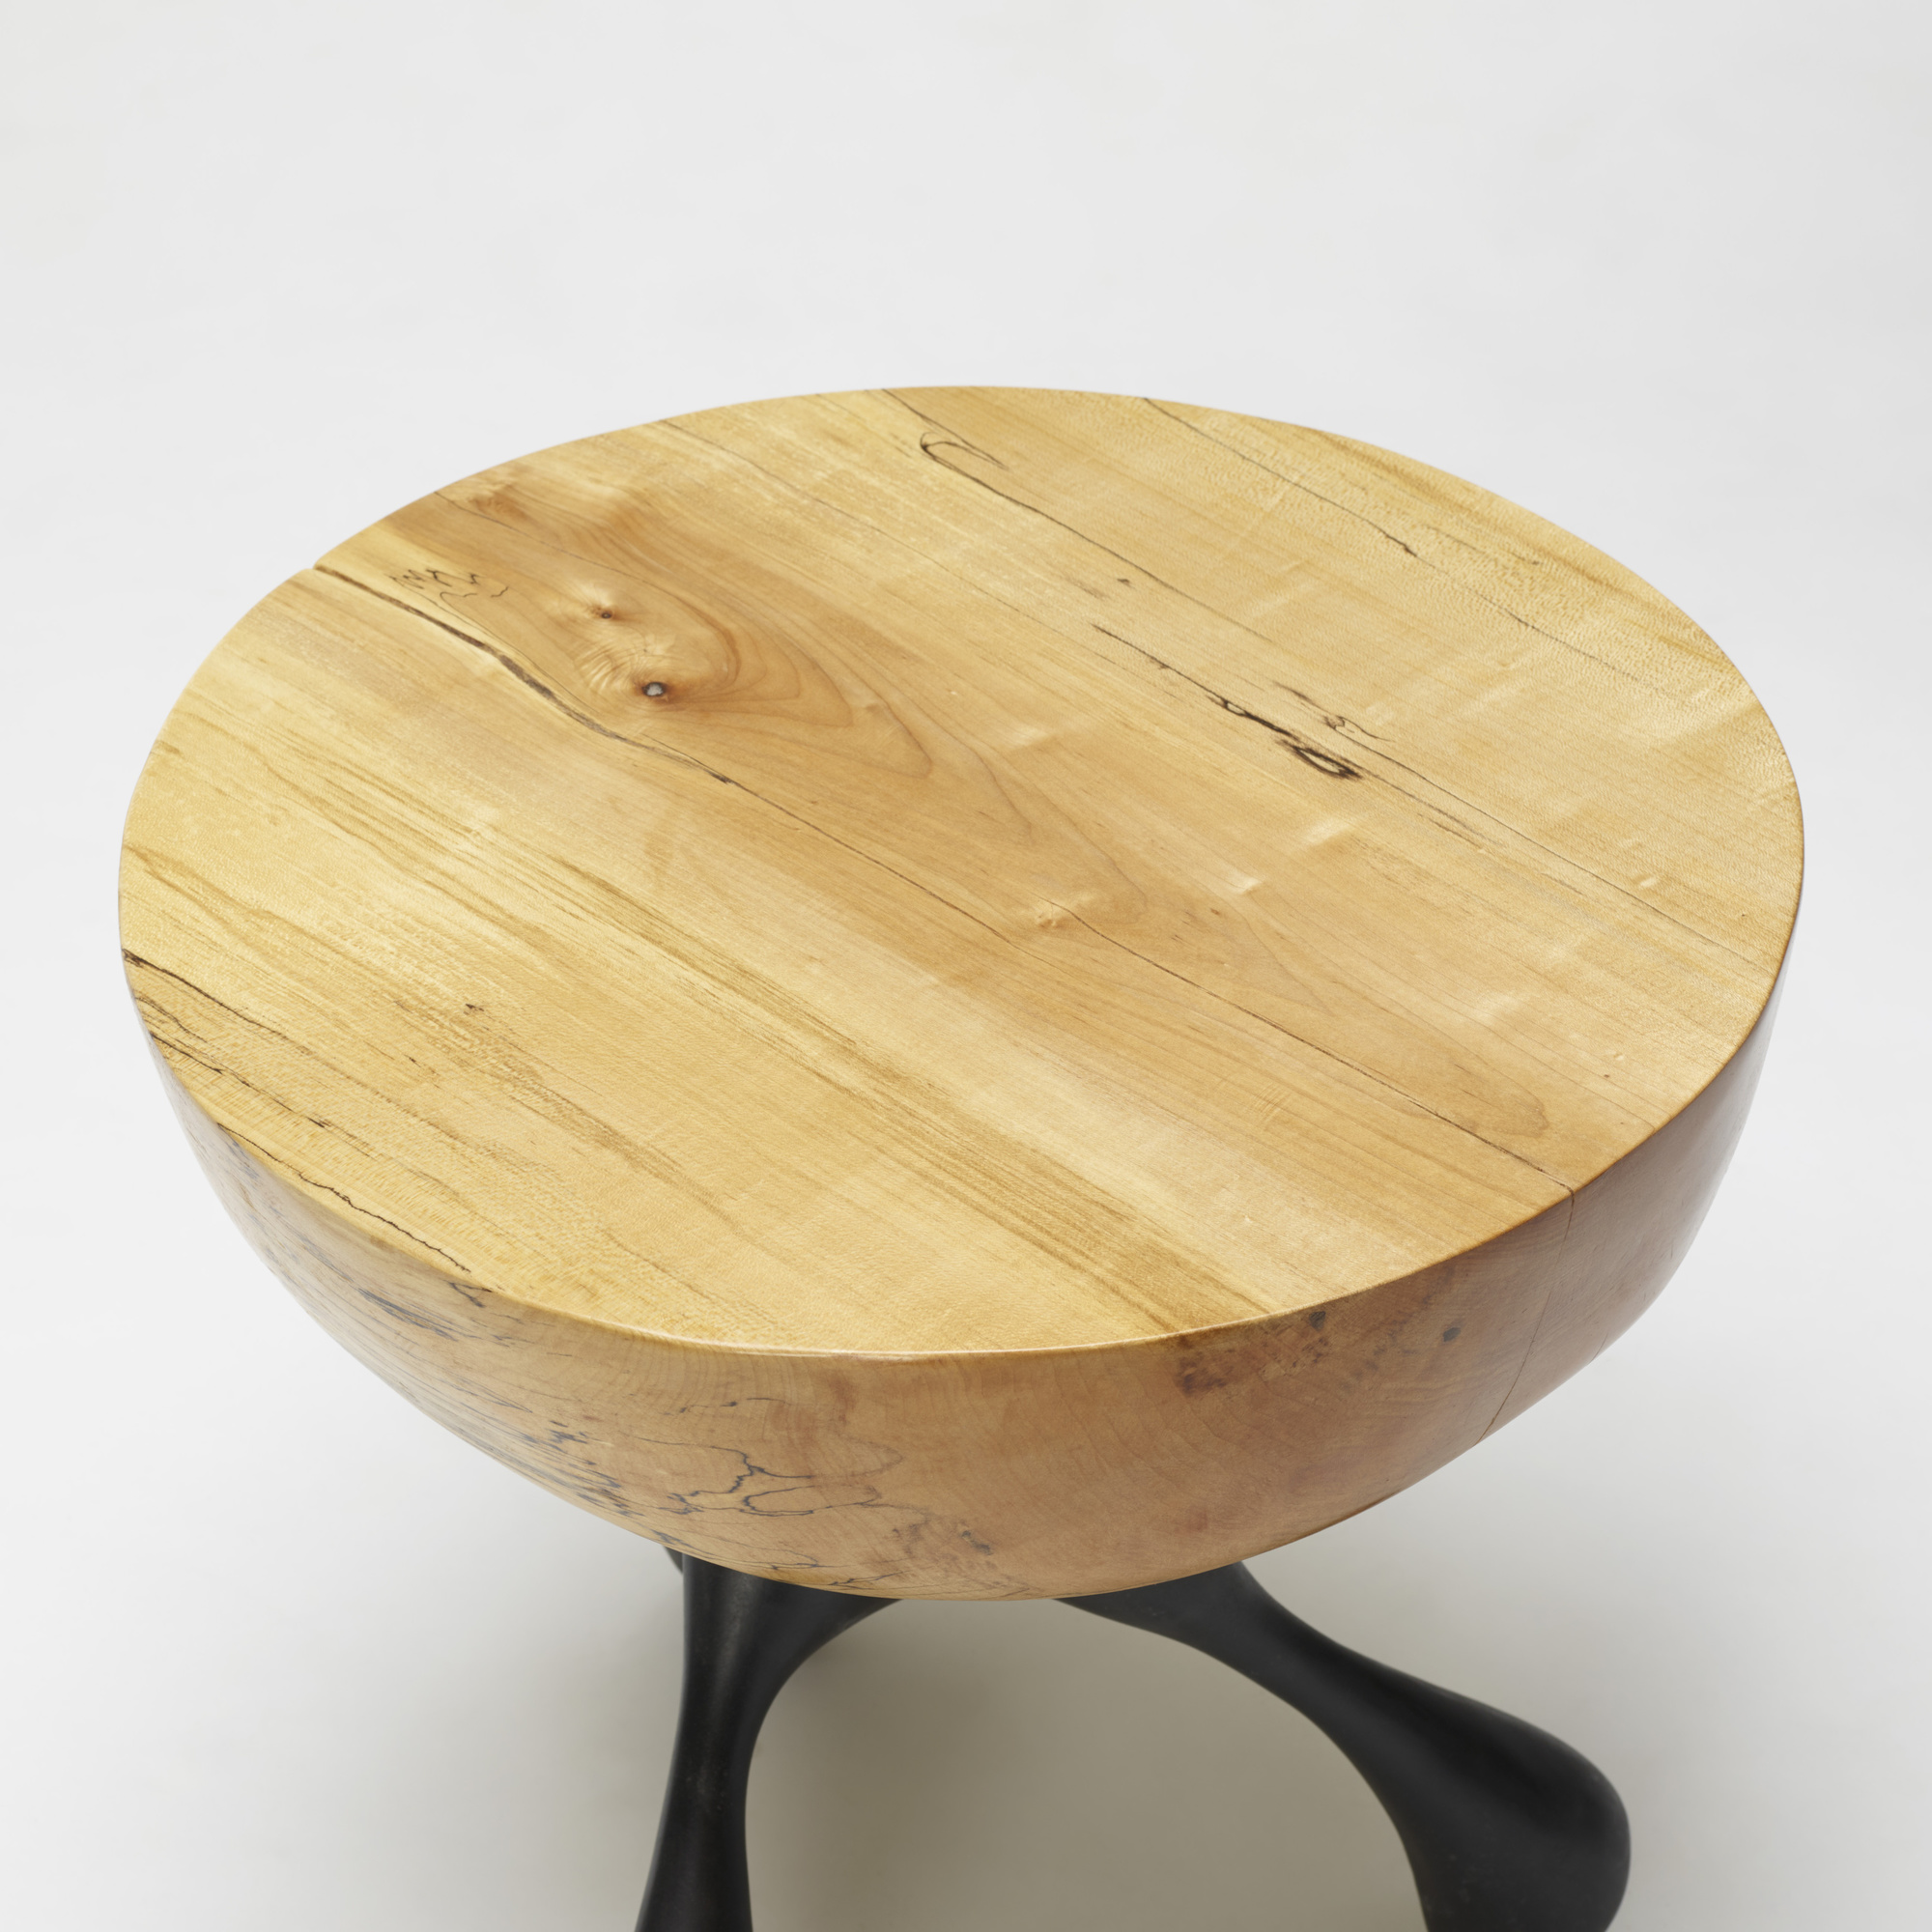 191: Jordan Mozer / prototype Musashi occasional table (2 of 2)